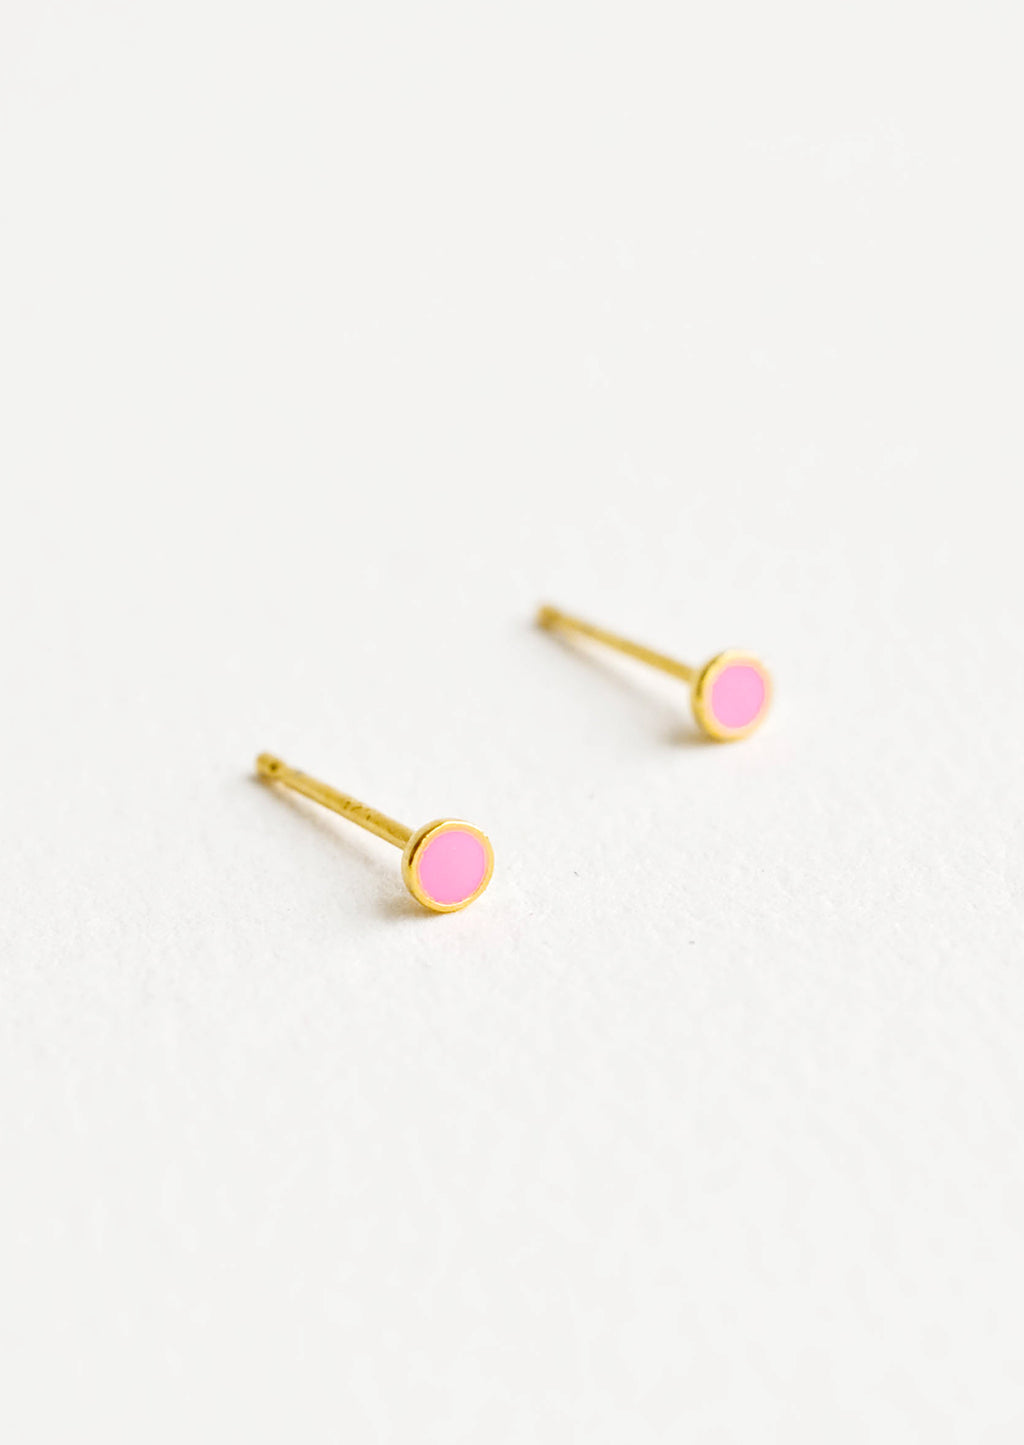 2: Round studs with neon pink enamel circle and gold bezel.